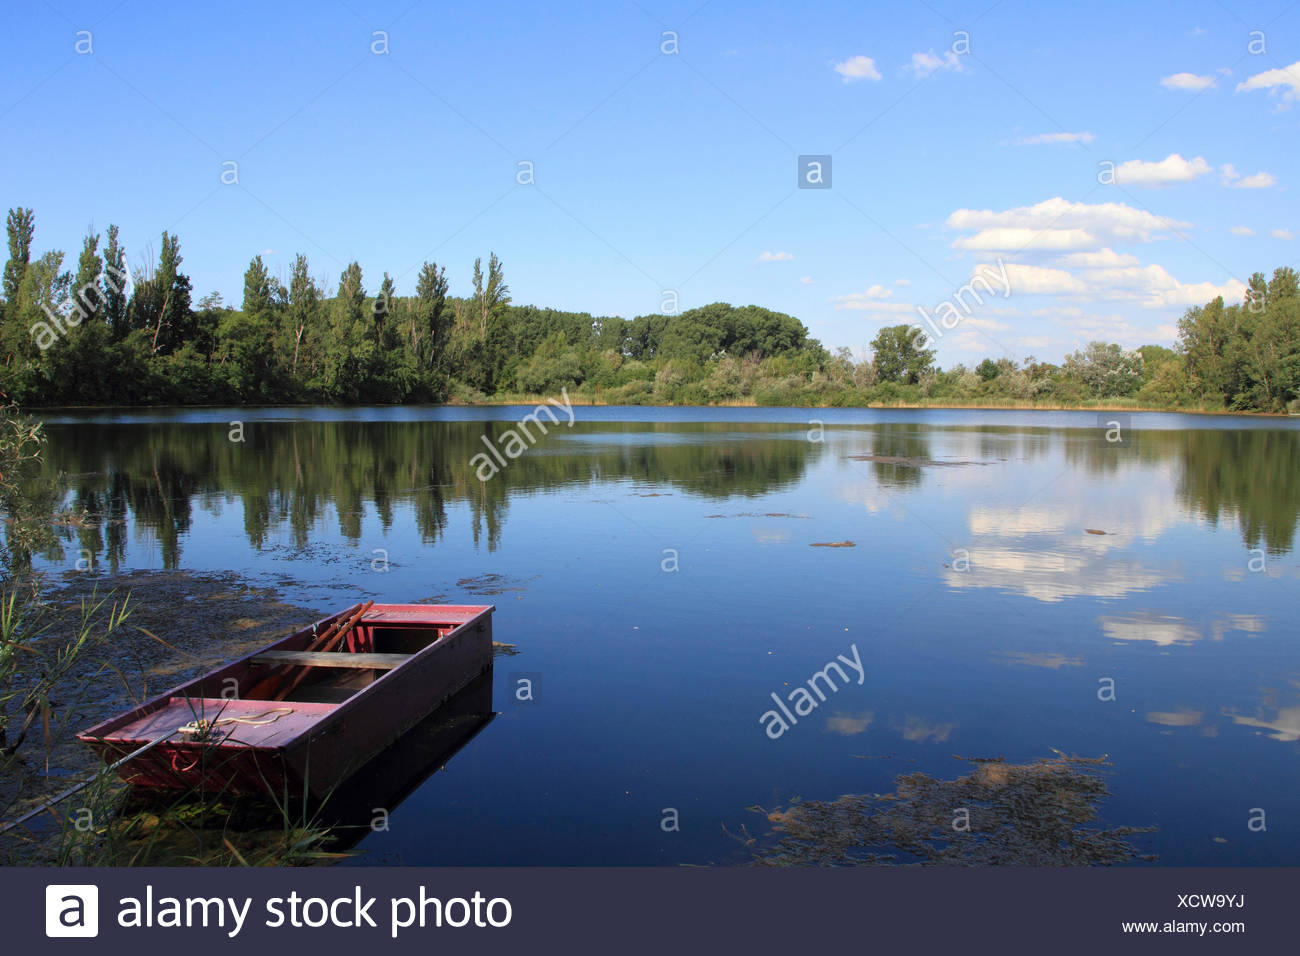 oxbow lake Altrhein with wooden boat in summer, Germany - Stock Image